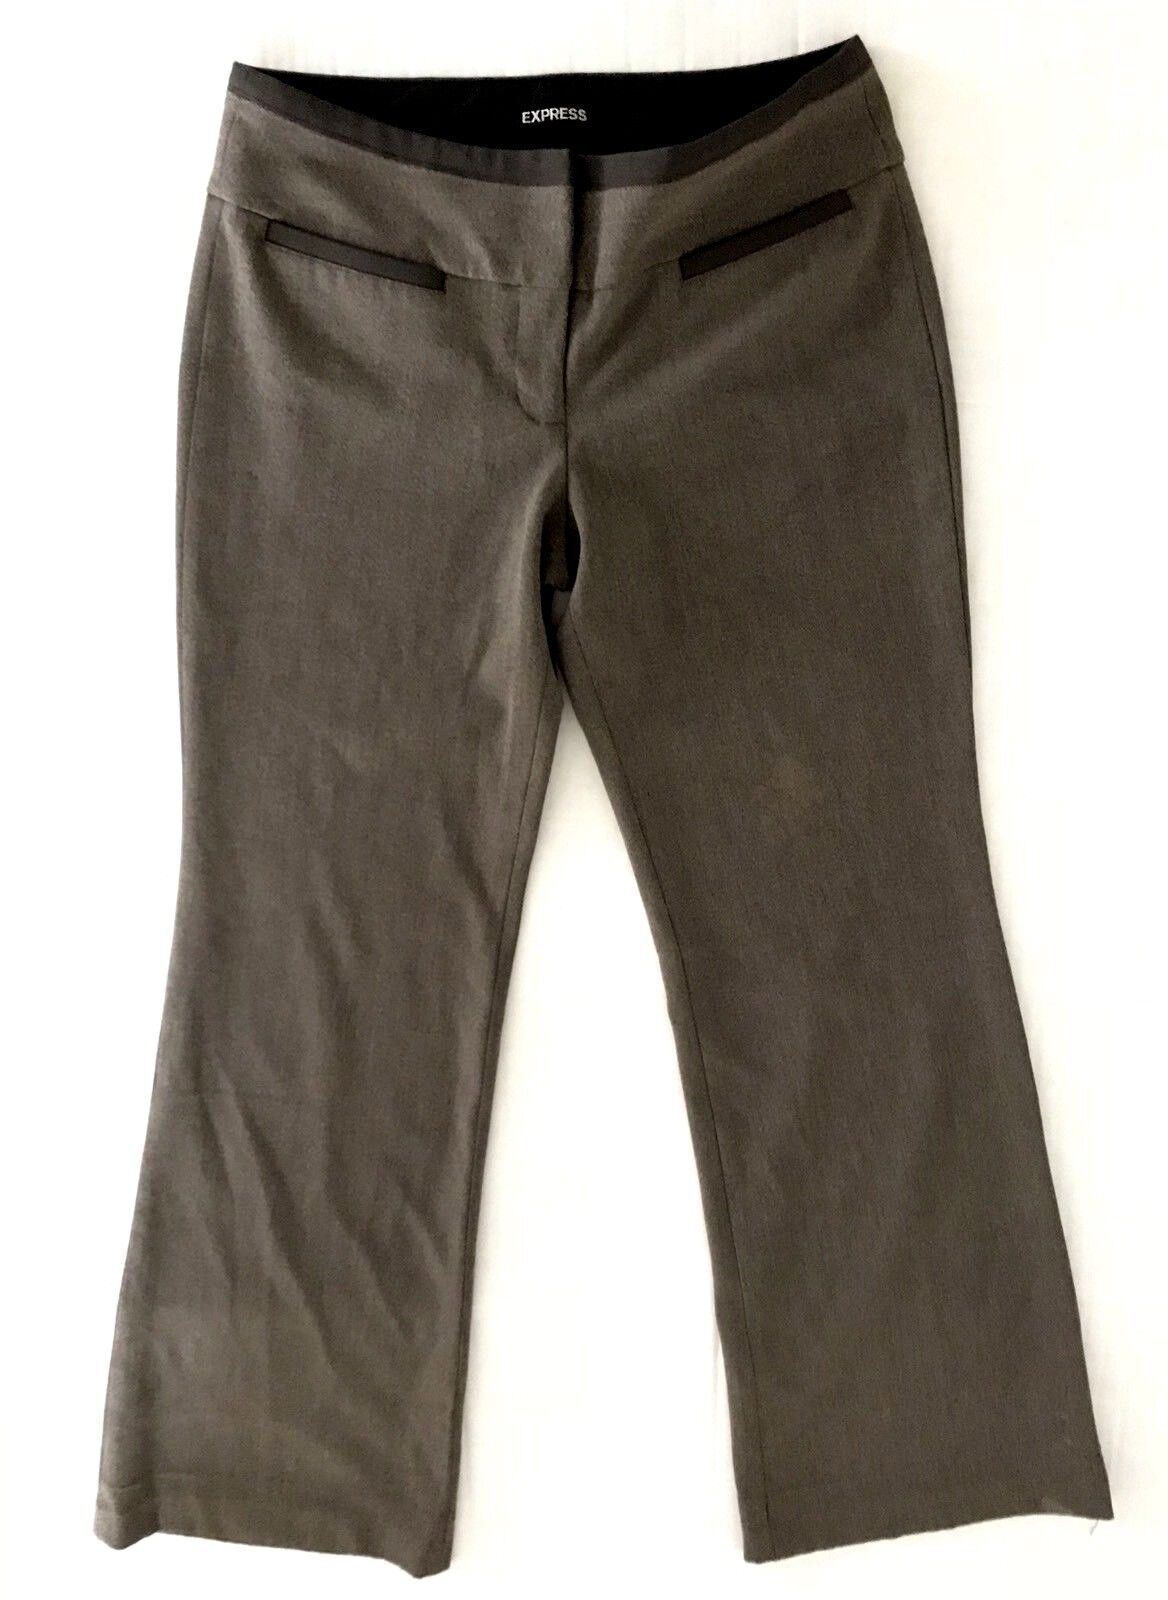 Express Editor Womens Brown Trousers Size 6 x 31 Flat Front Regular Stretch